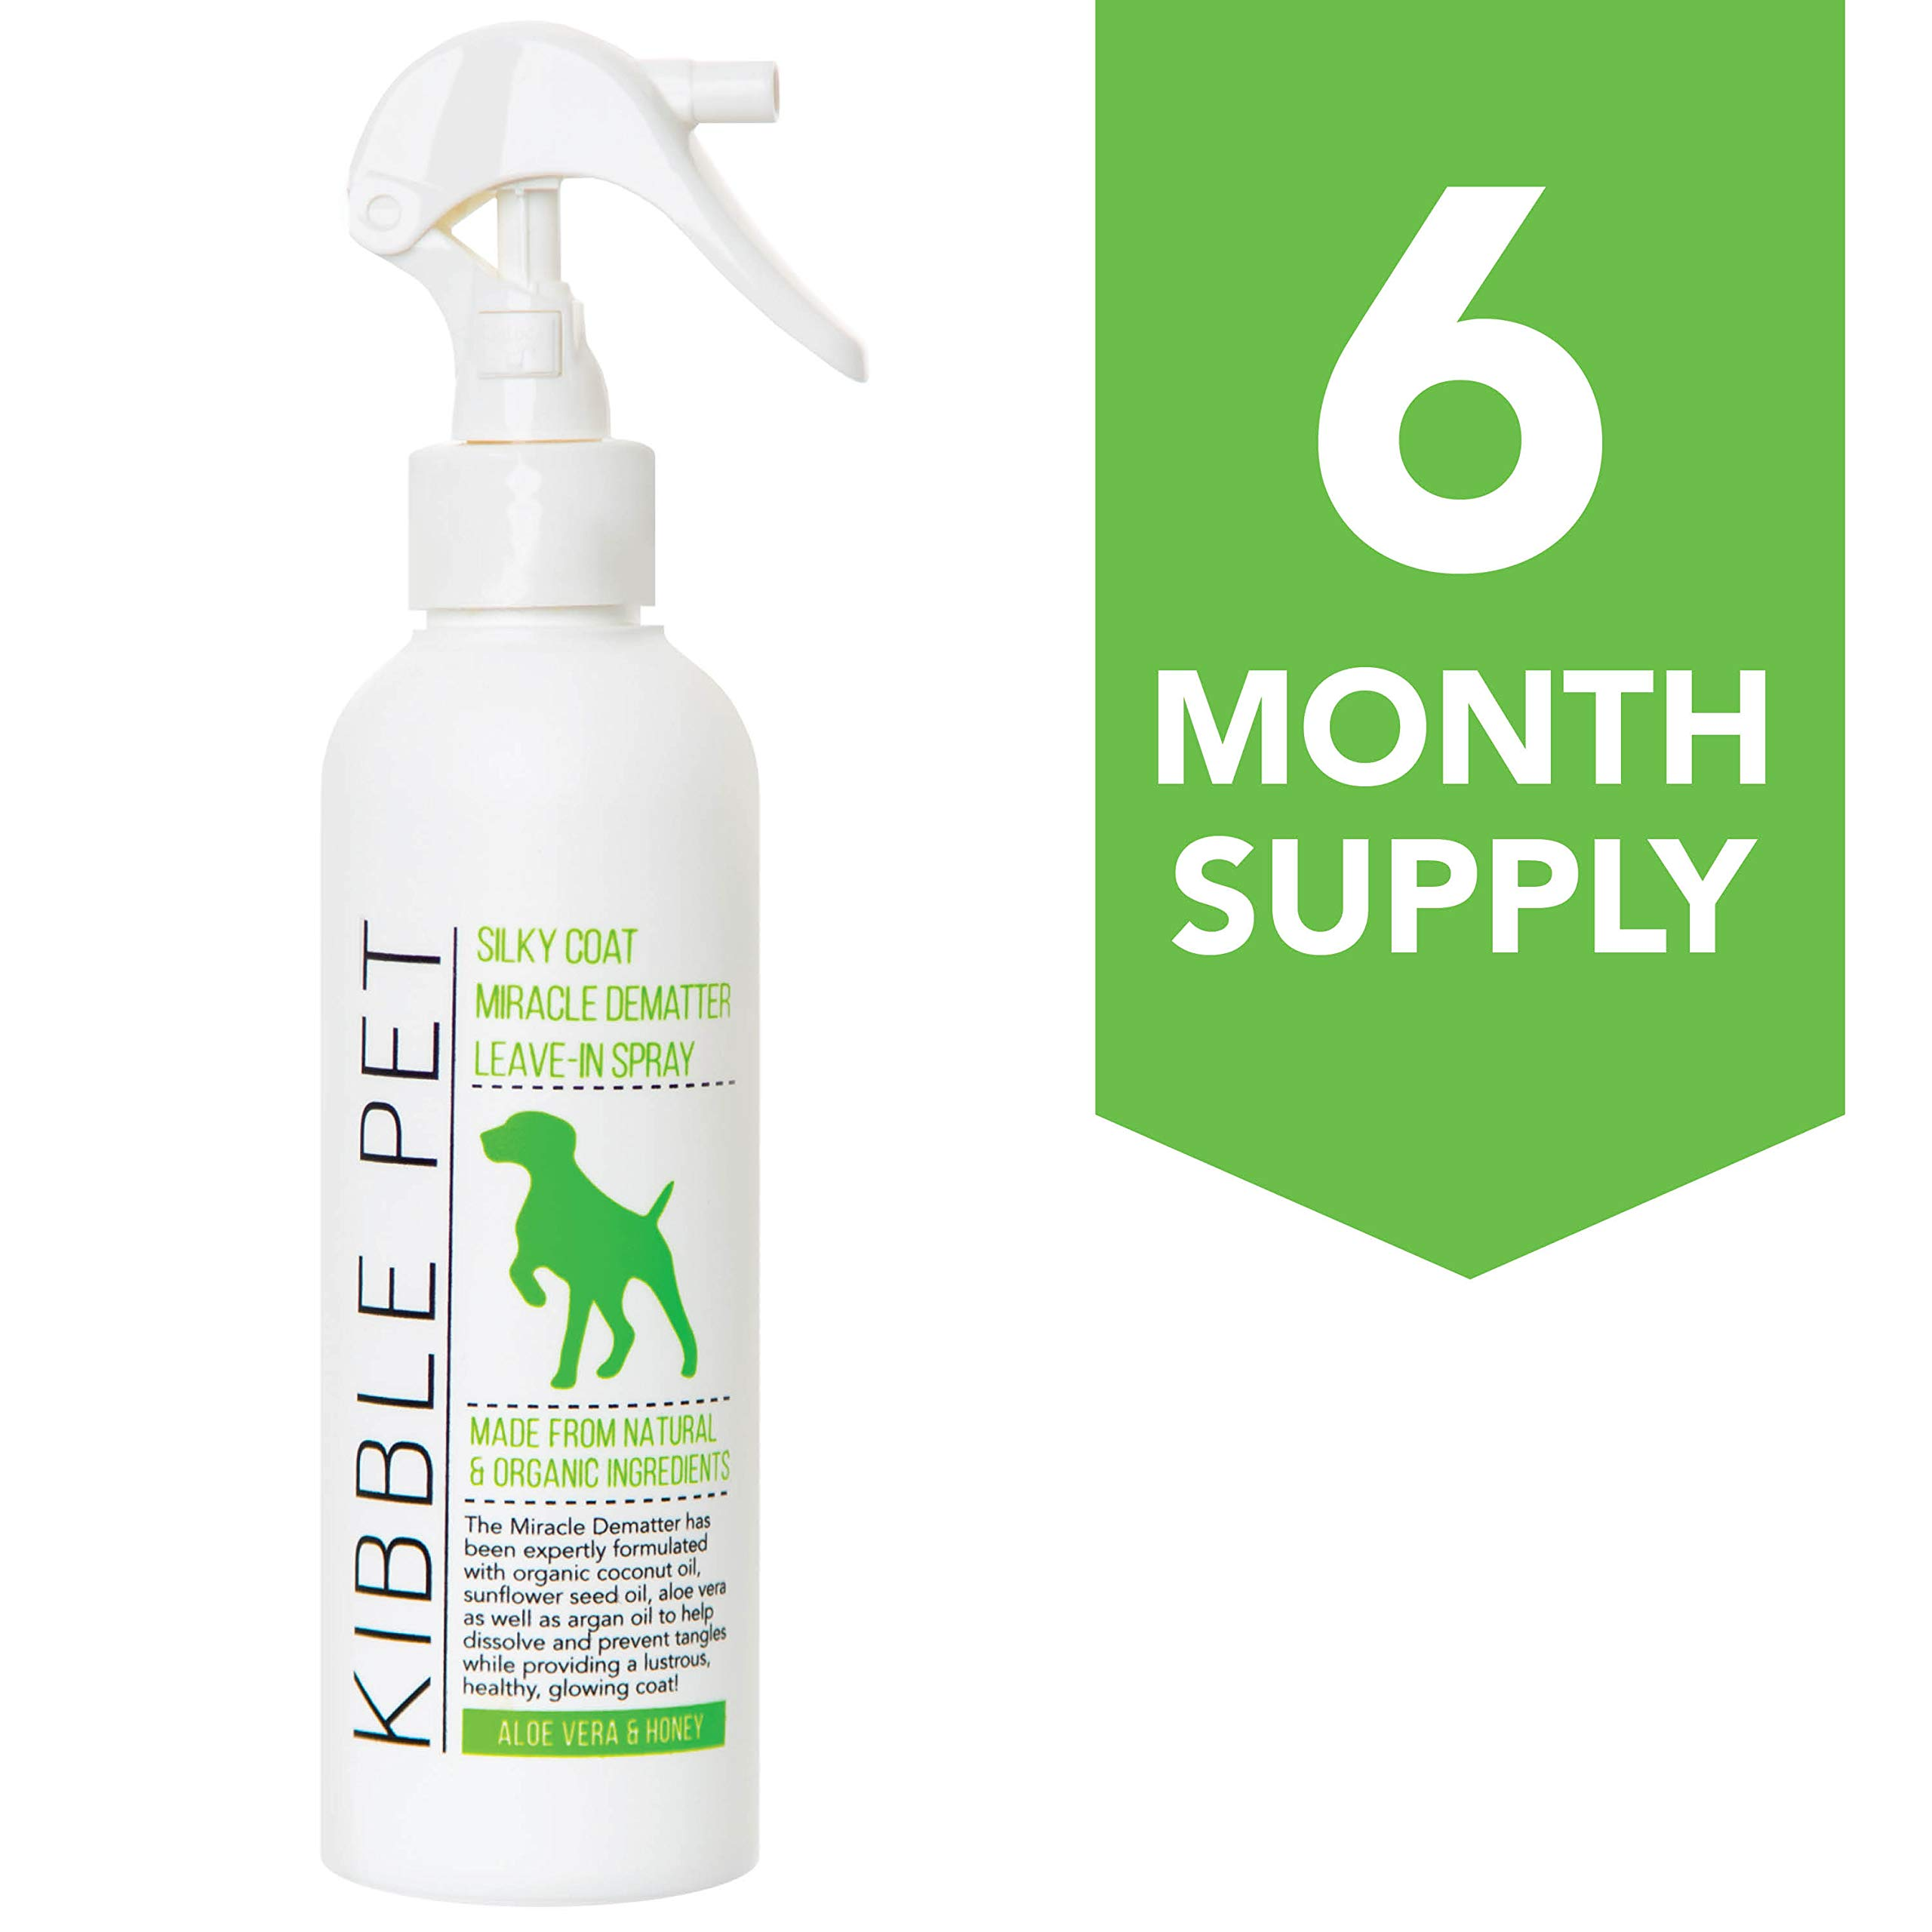 Kibble Pet Miracle Detangling Spray Hypoallergenic | Made with Natural and Organic Ingredients | 6 Month Supply | Made in The USA | 7.1oz | for Dogs